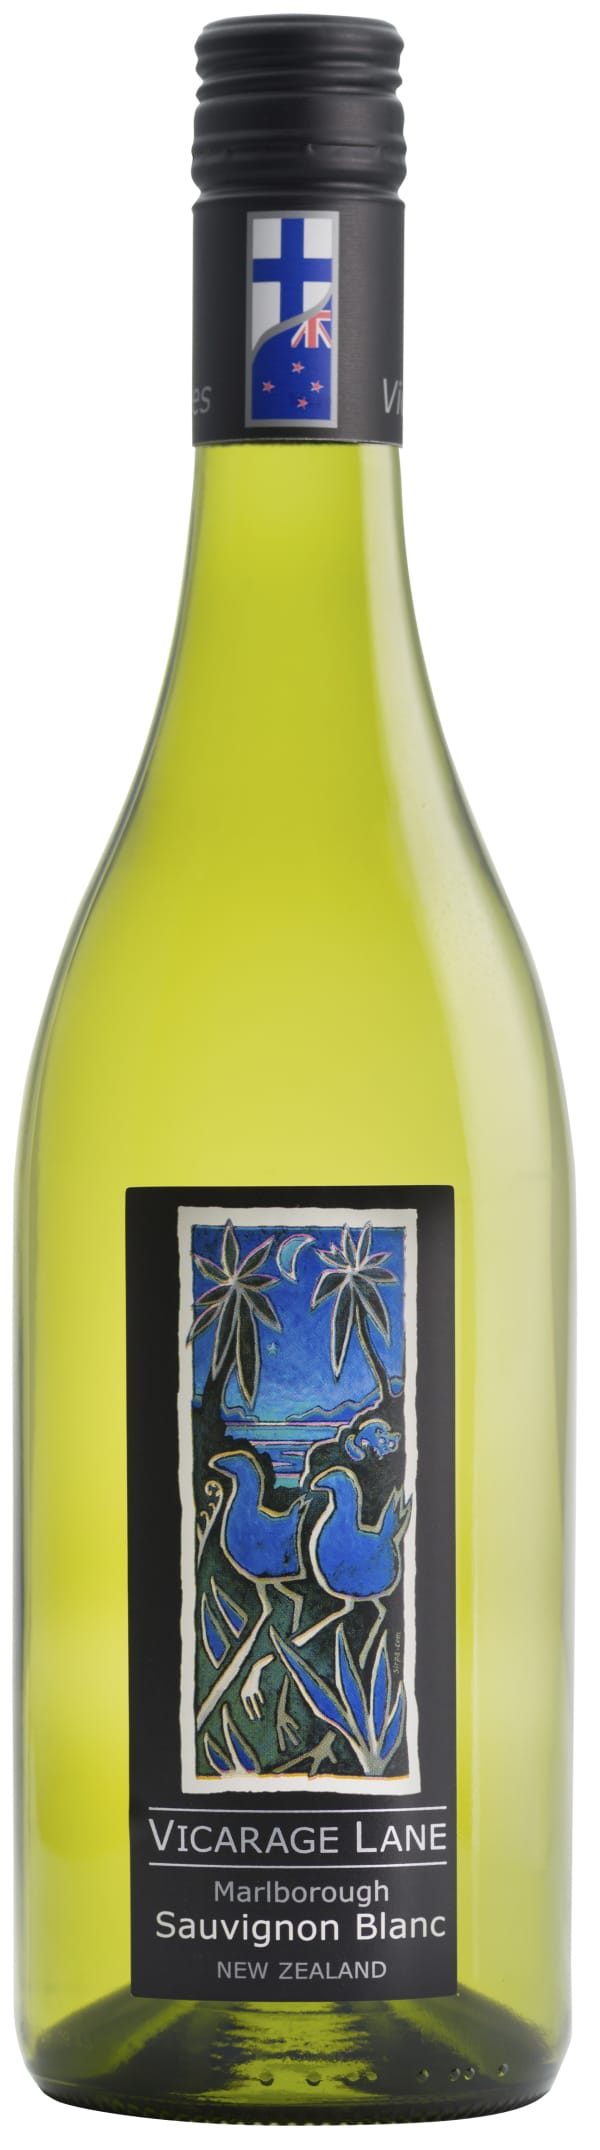 Vicarage Lane Marlborough Sauvignon Blanc 2016